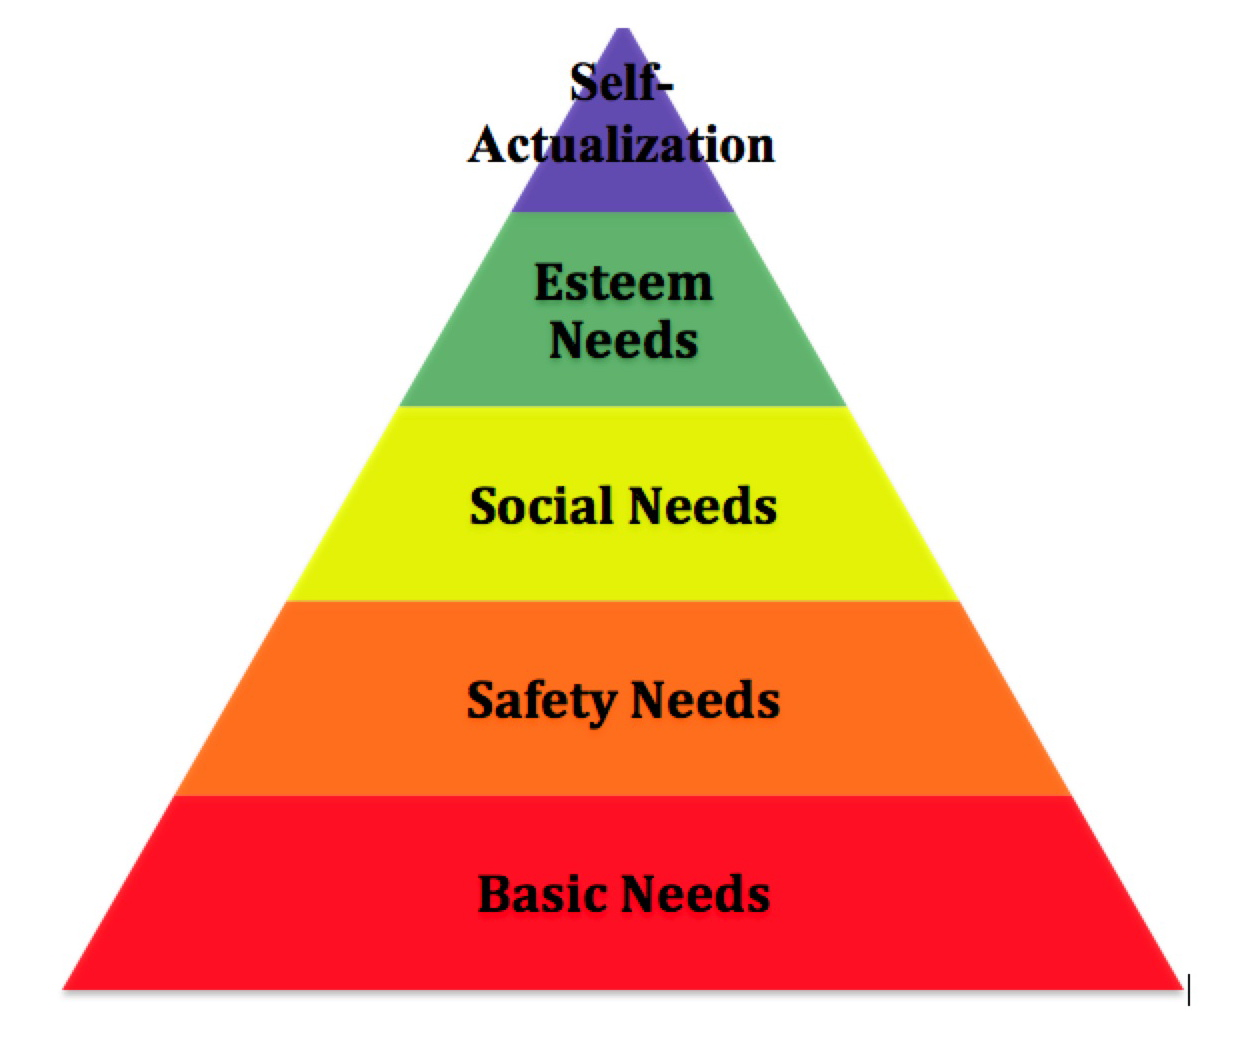 malslows theory A discussion of maslow's hierarchy of needs, implications for management, and some limitations of the model.